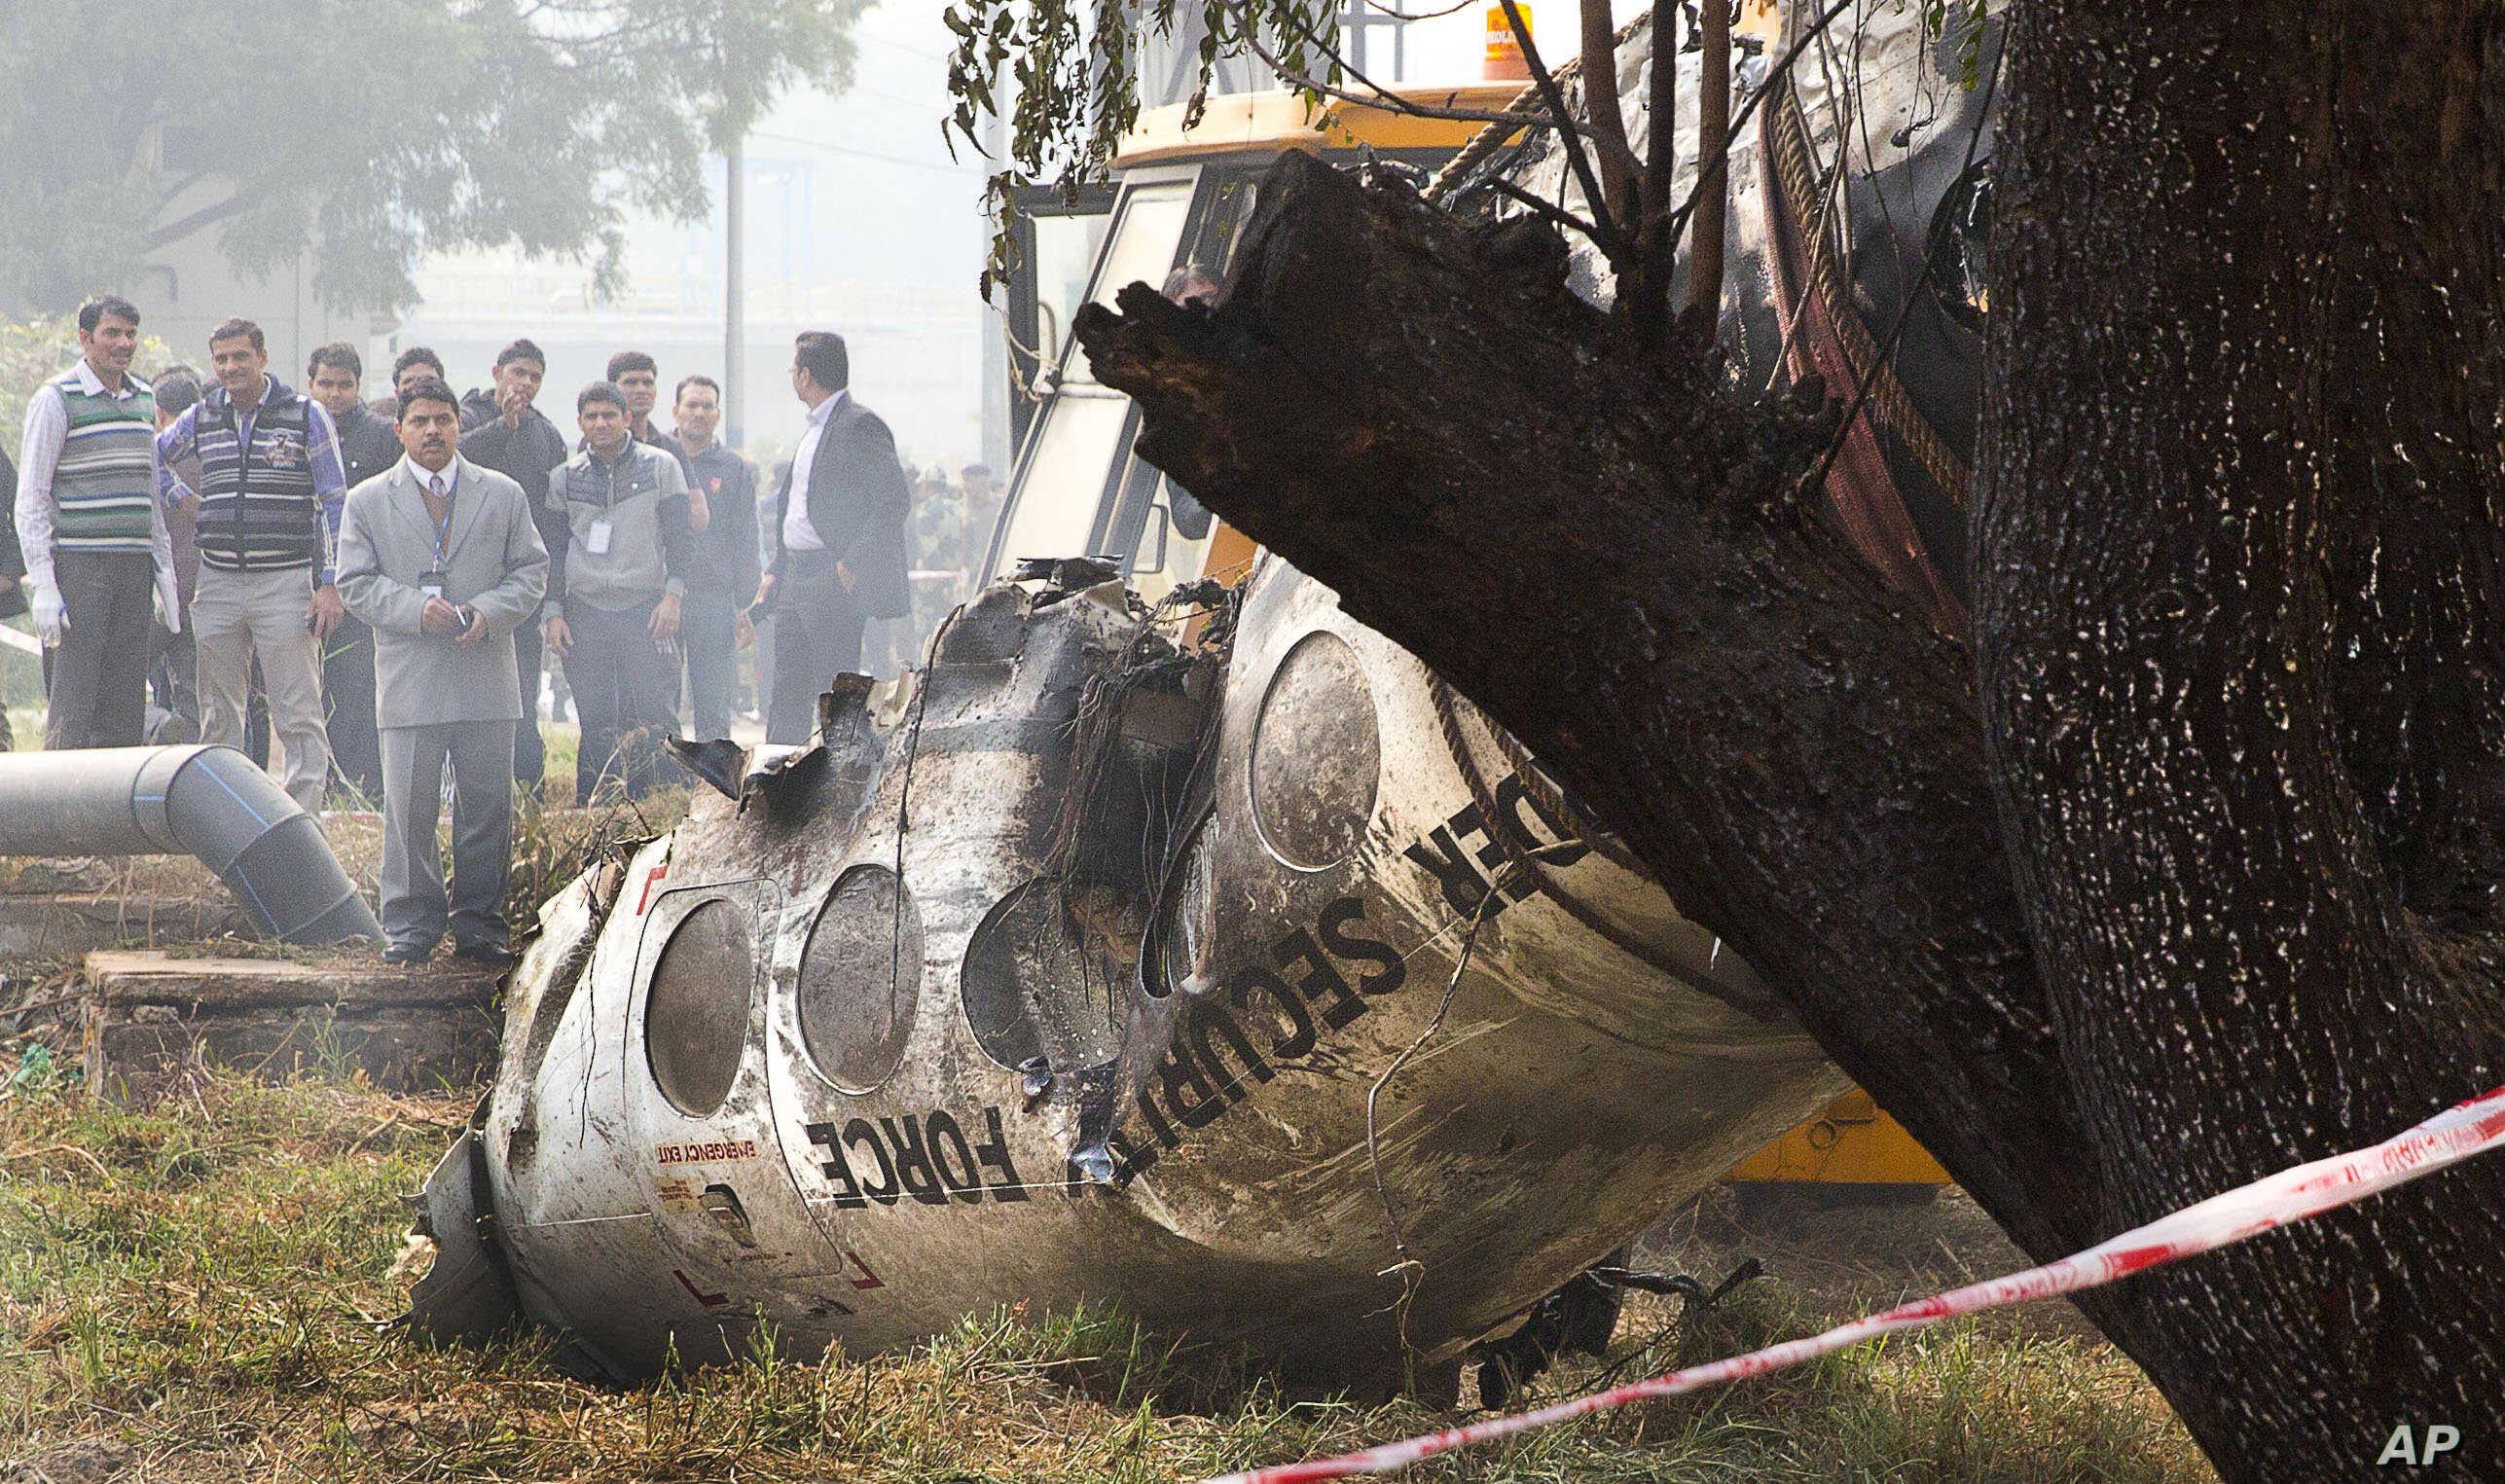 Investigators look at the remains of a small Indian paramilitary plane that crashed outside the airport in New Delhi, India, Dec. 22, 2015.